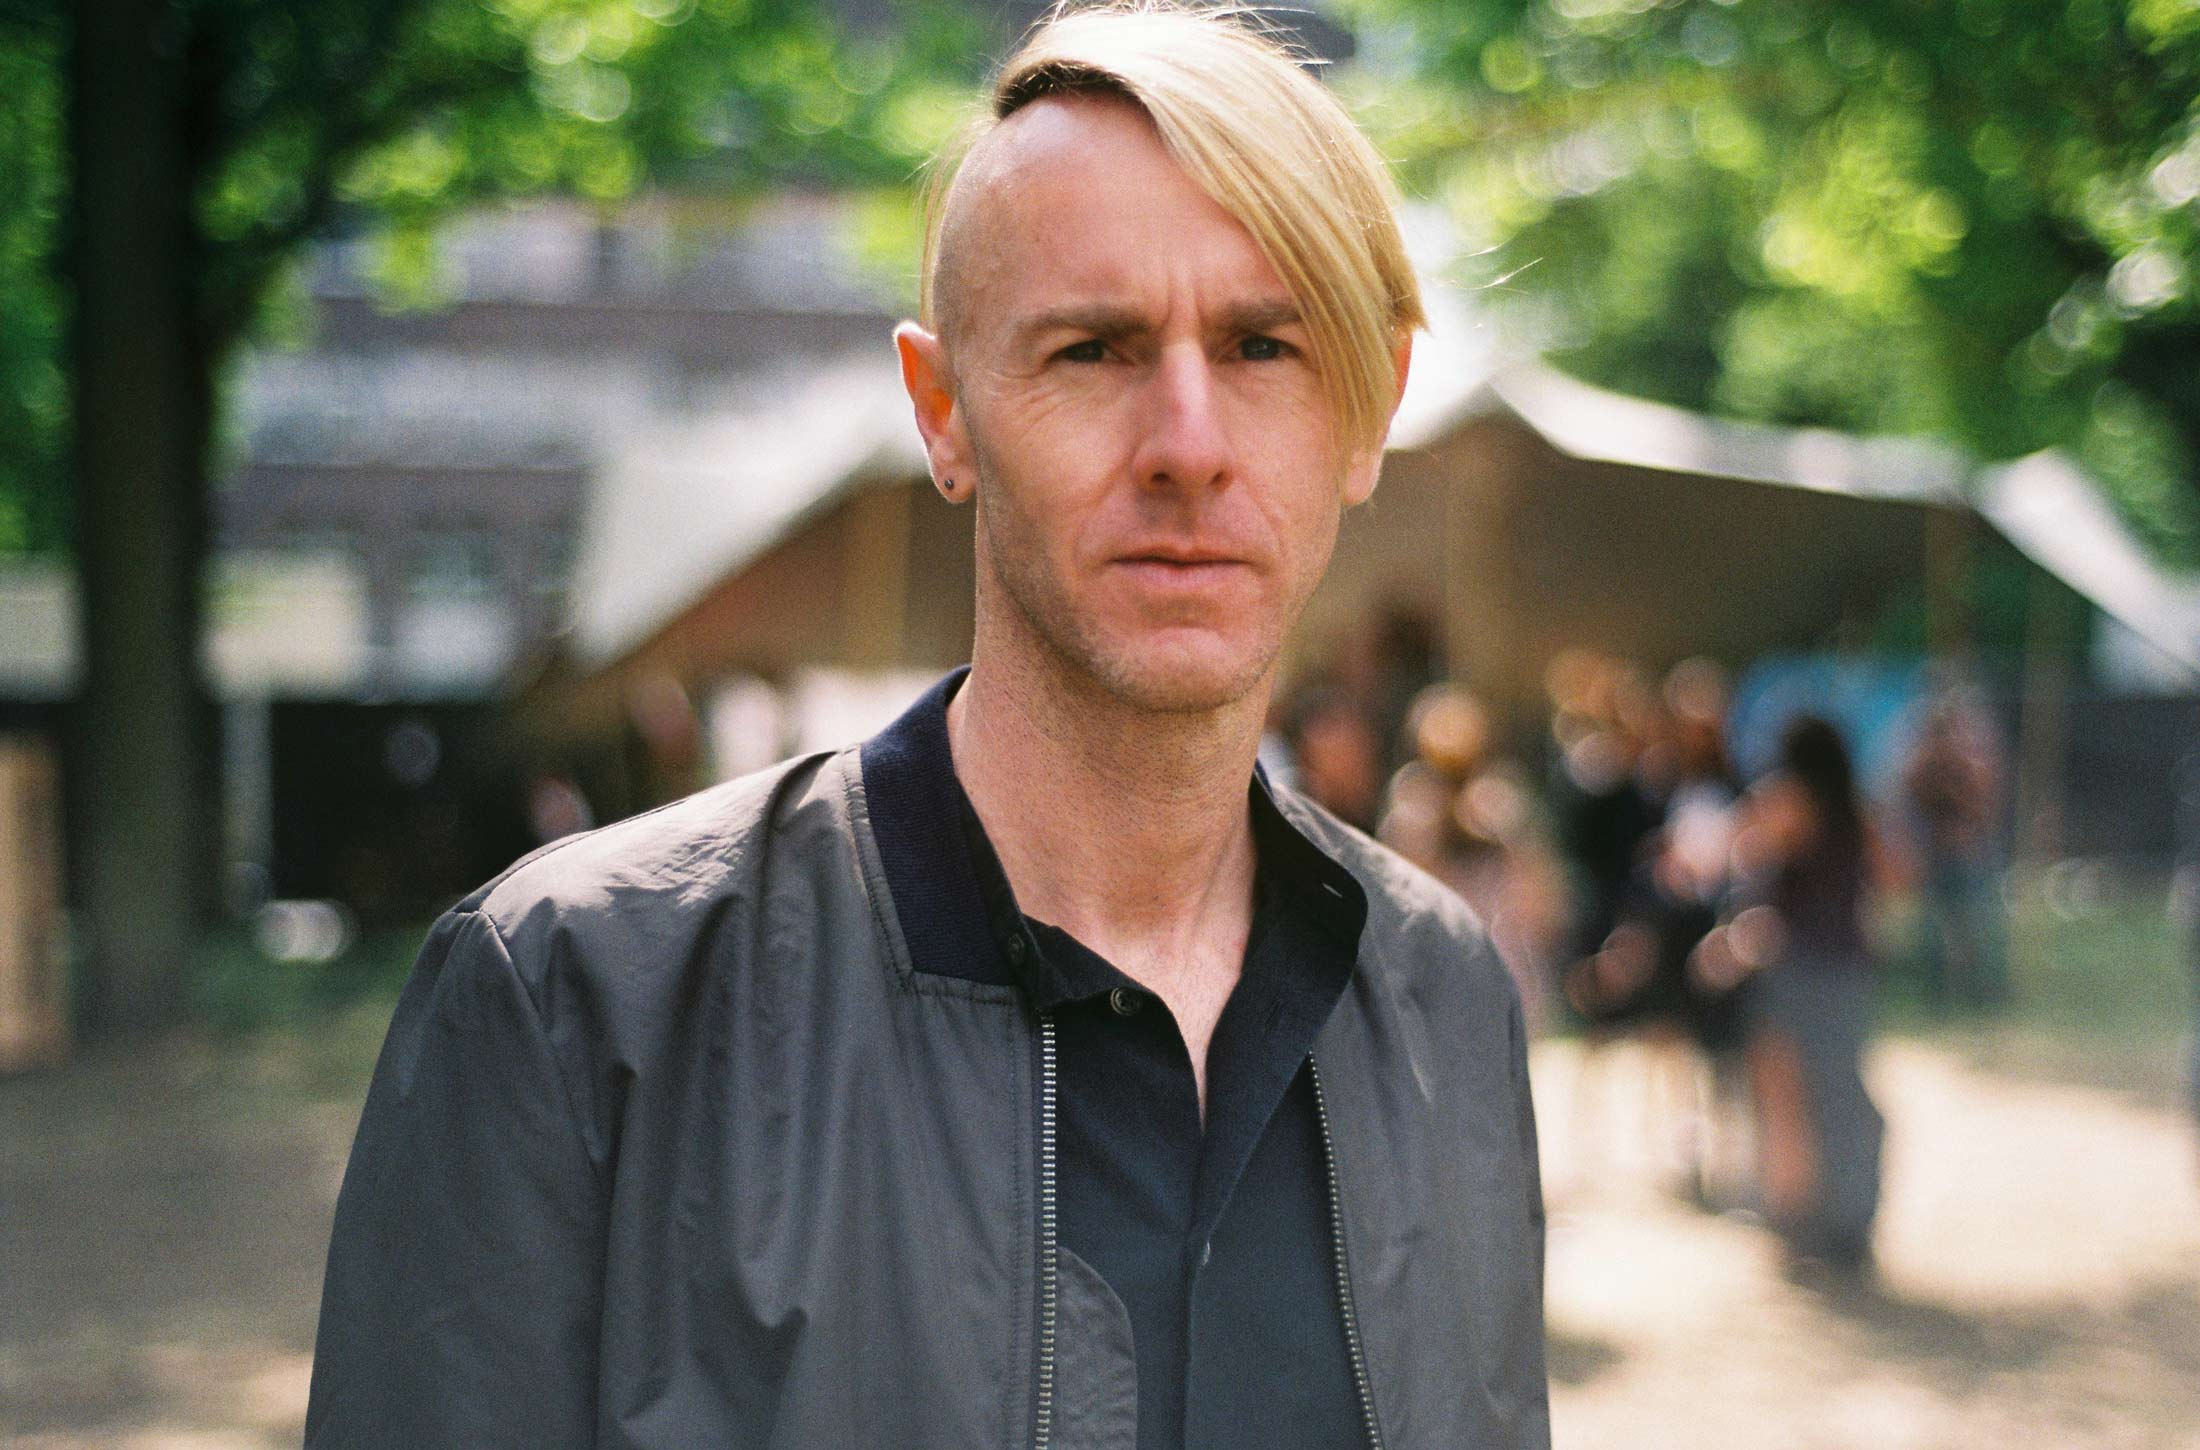 Richie Hawtin Berlin Underground Techno Tresor Ohm Rave Nightlife